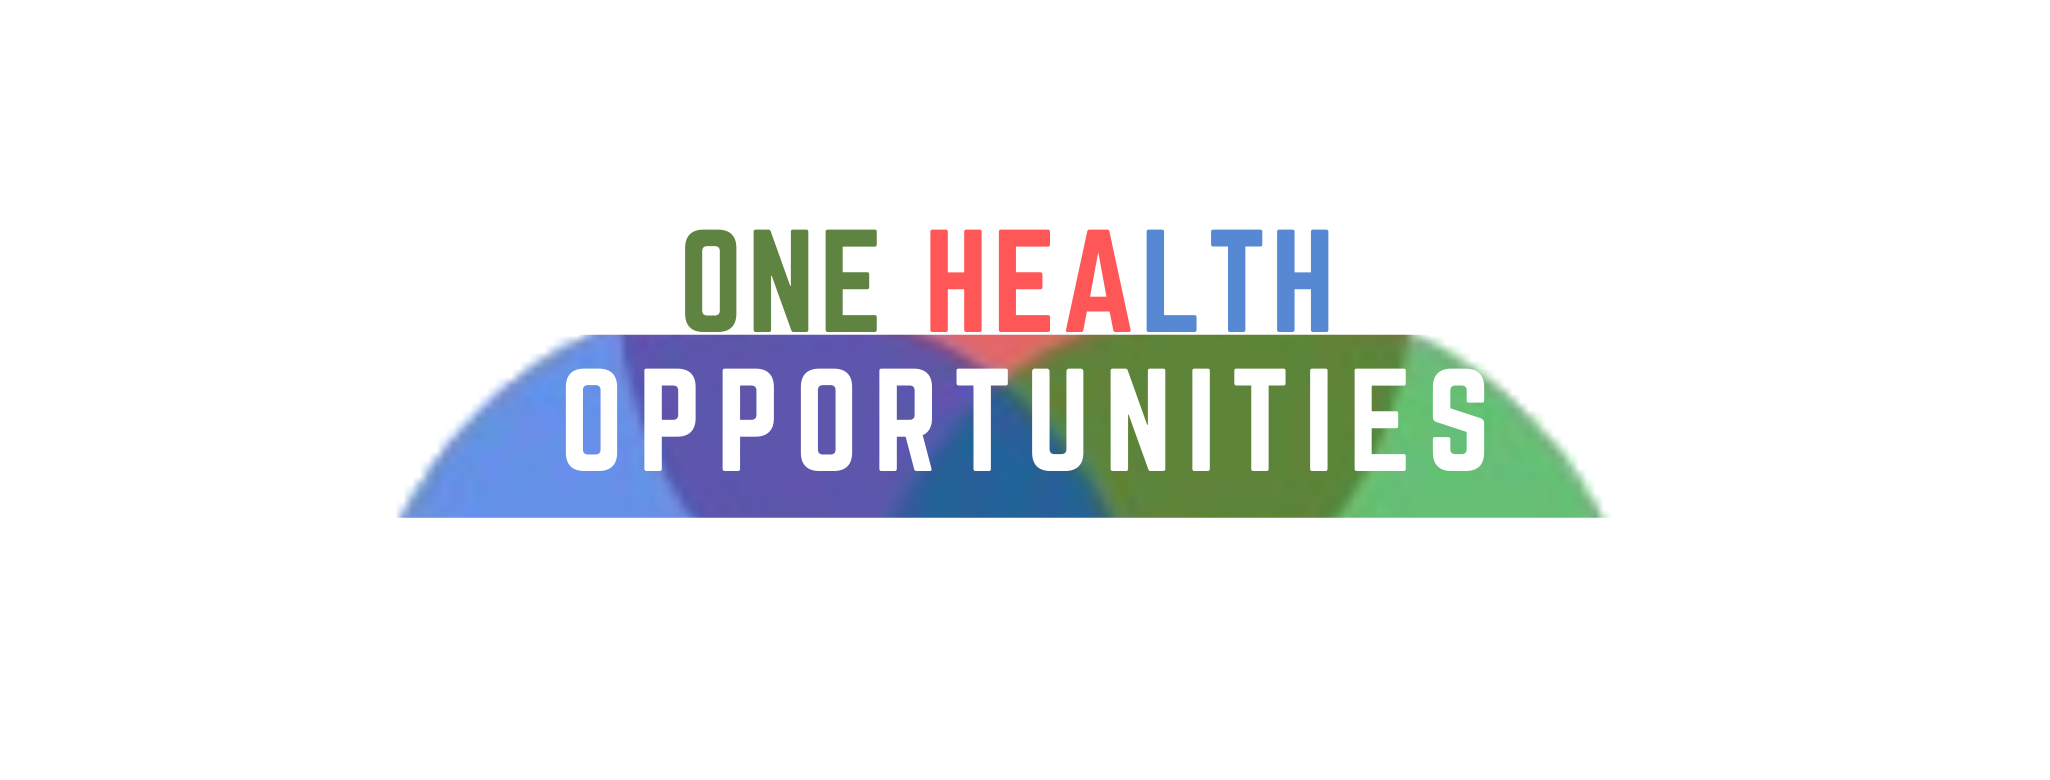 One Health Opportunities logo